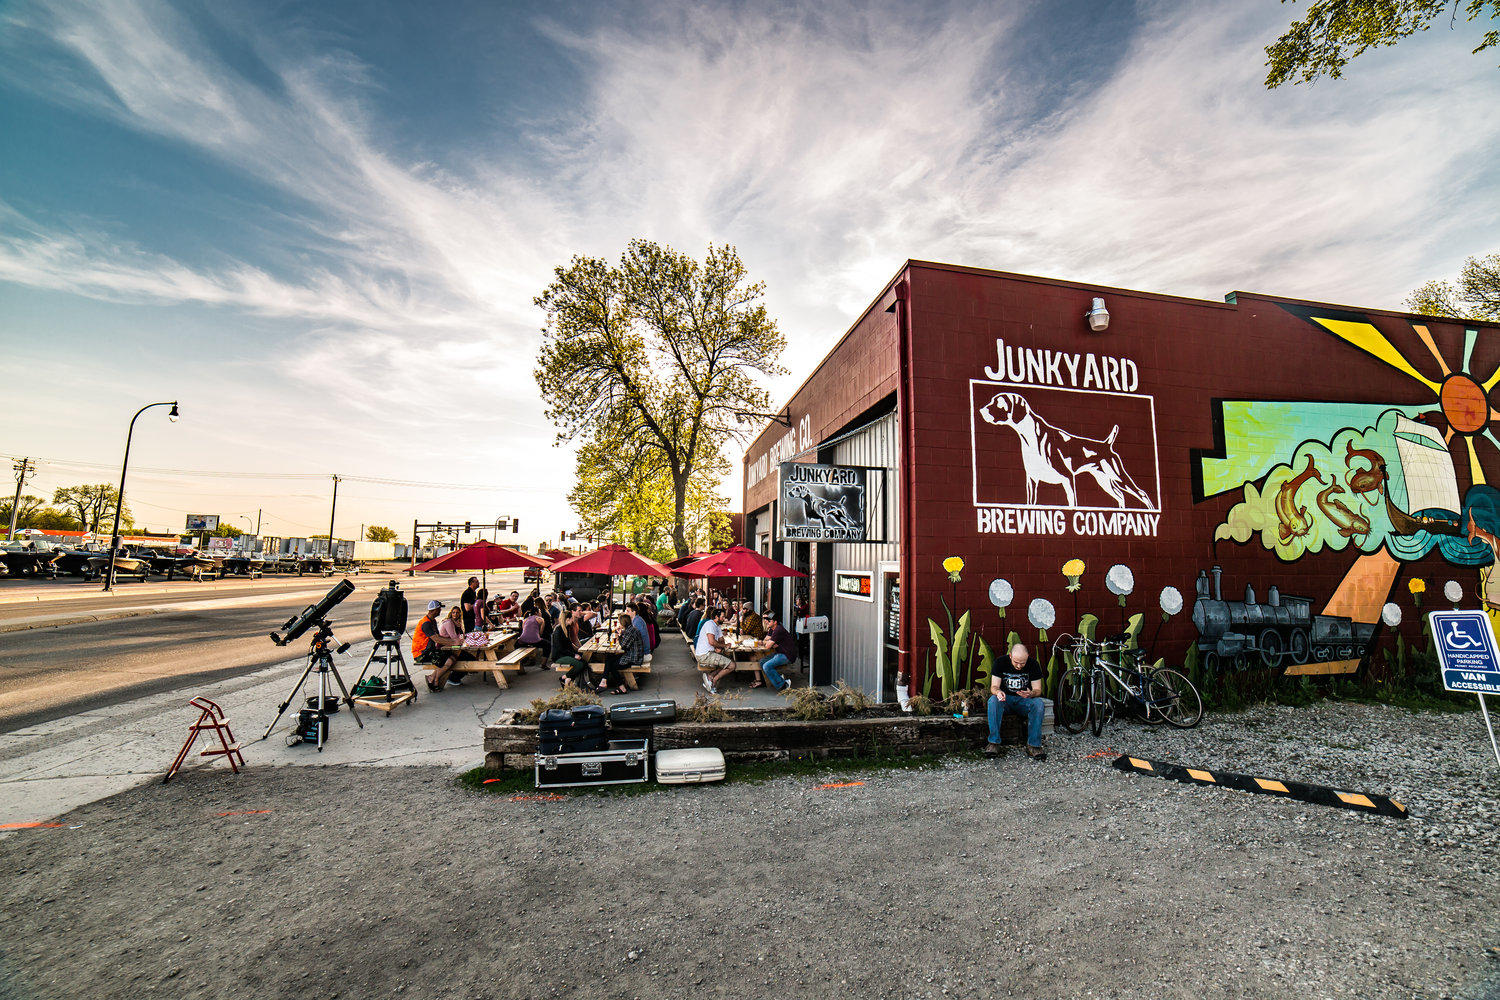 Junkyard Brewing Company | Small craft brewery in Moorhead, MN